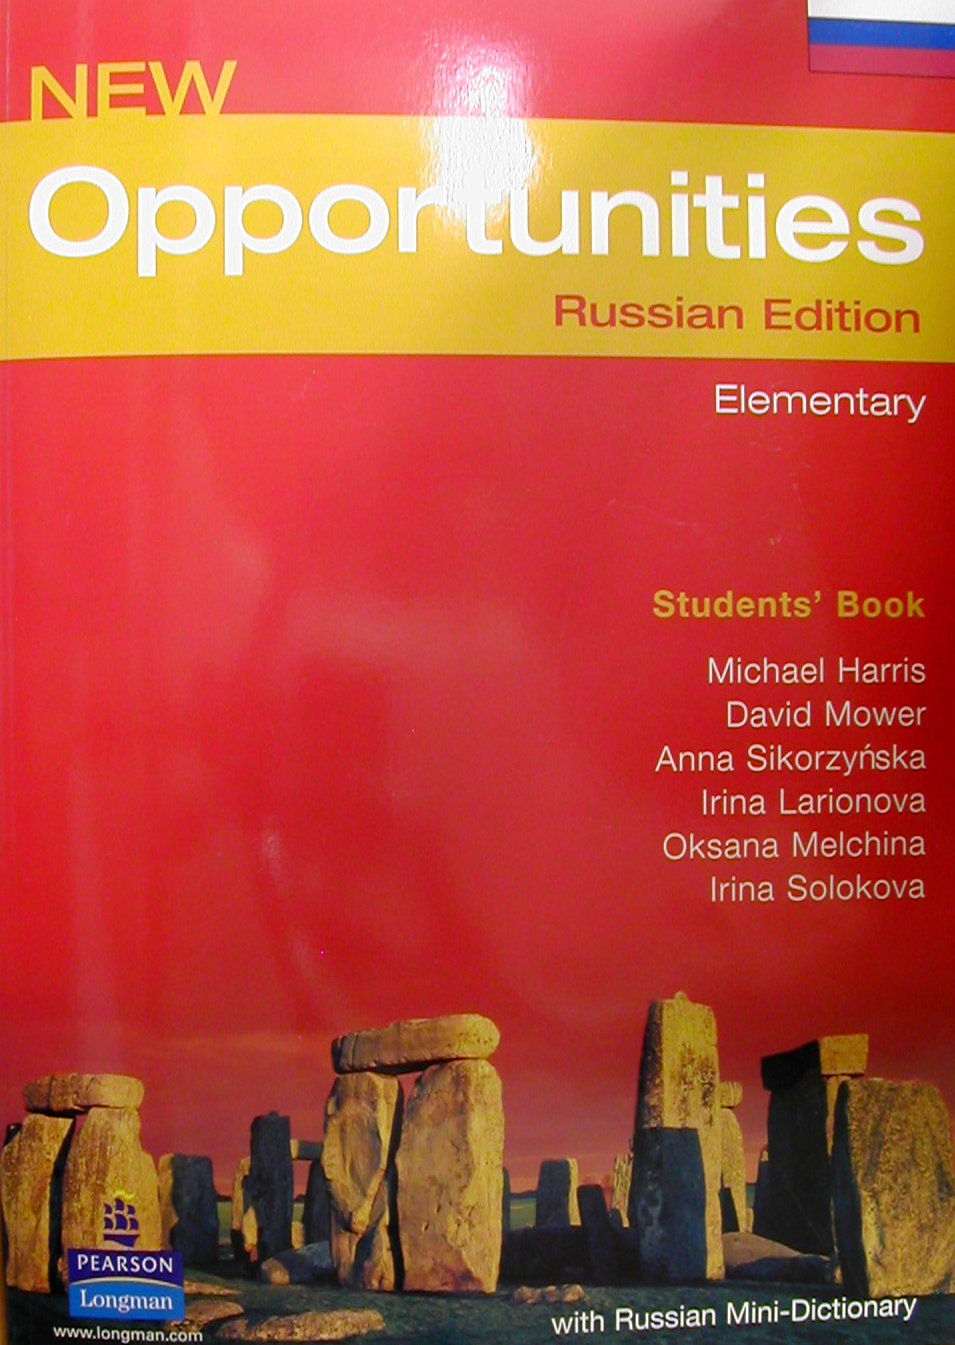 ������� �����  «New Opportunities Elementary Students' Book. Russian Edition»